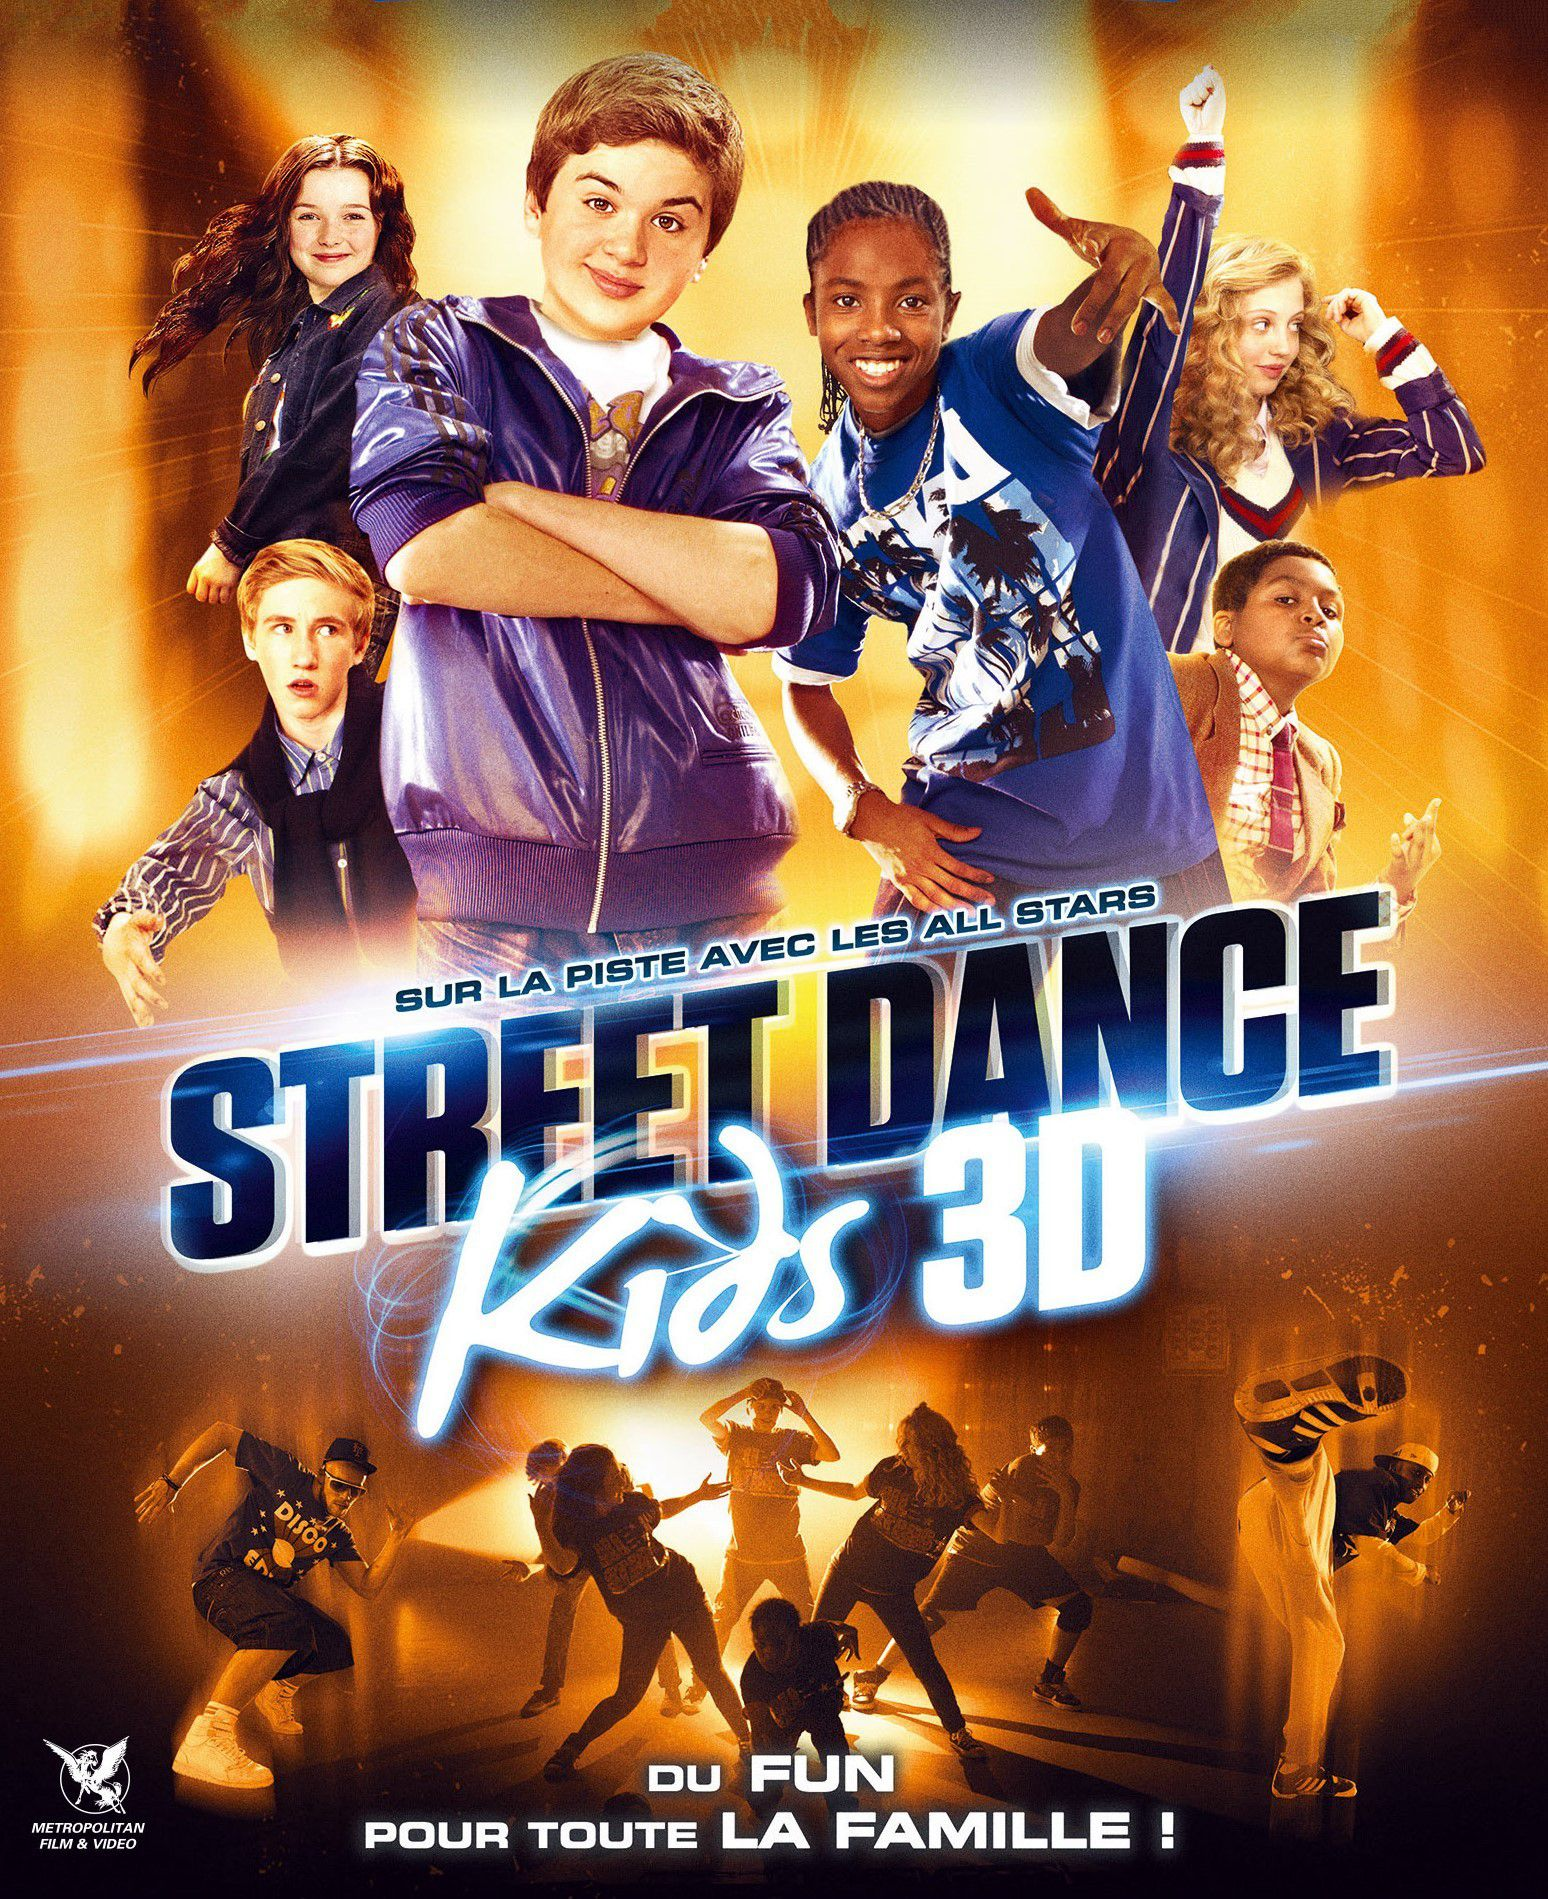 Street Dance Kids - Film (2013)